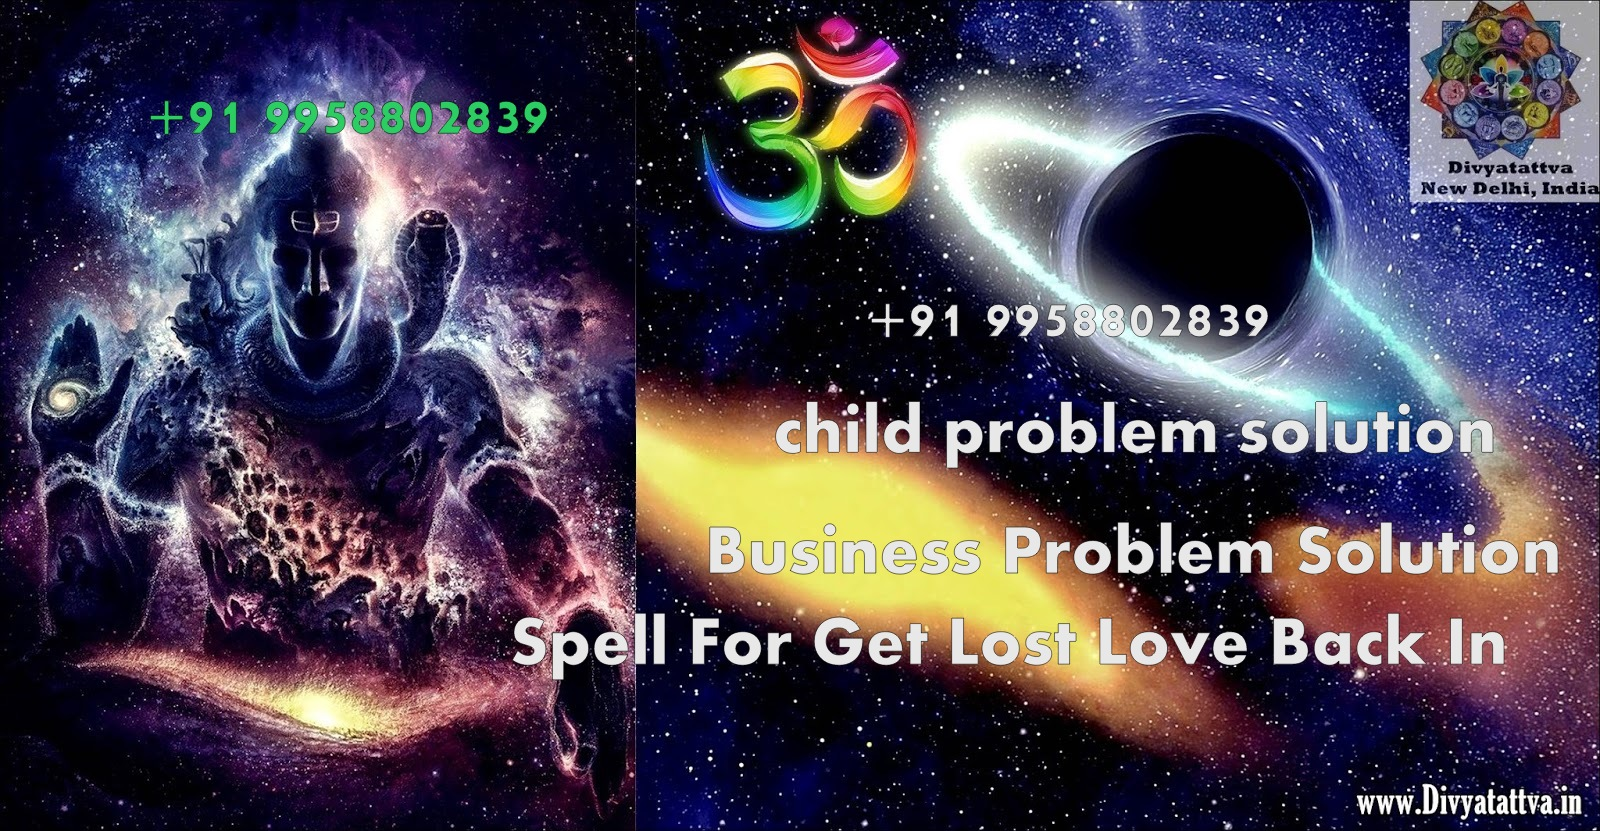 ALL PROBLEM SOLUTION ASTROLOGER images ~lOst lOve bAck~91